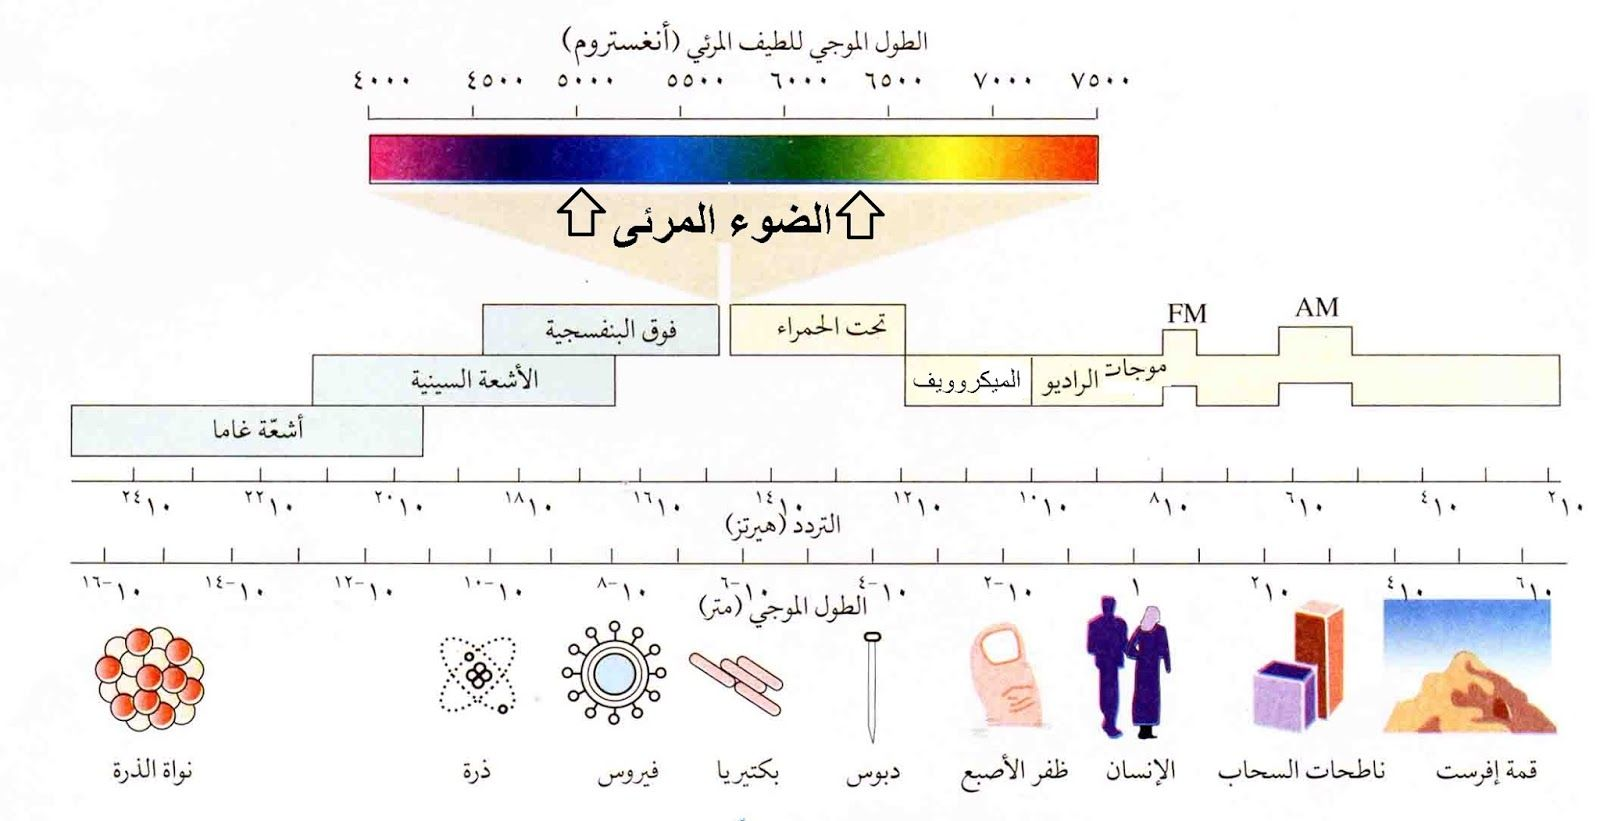 Pin By Mazin On Knowledge Information معرفة و معلومات Periodic Table 10 Things